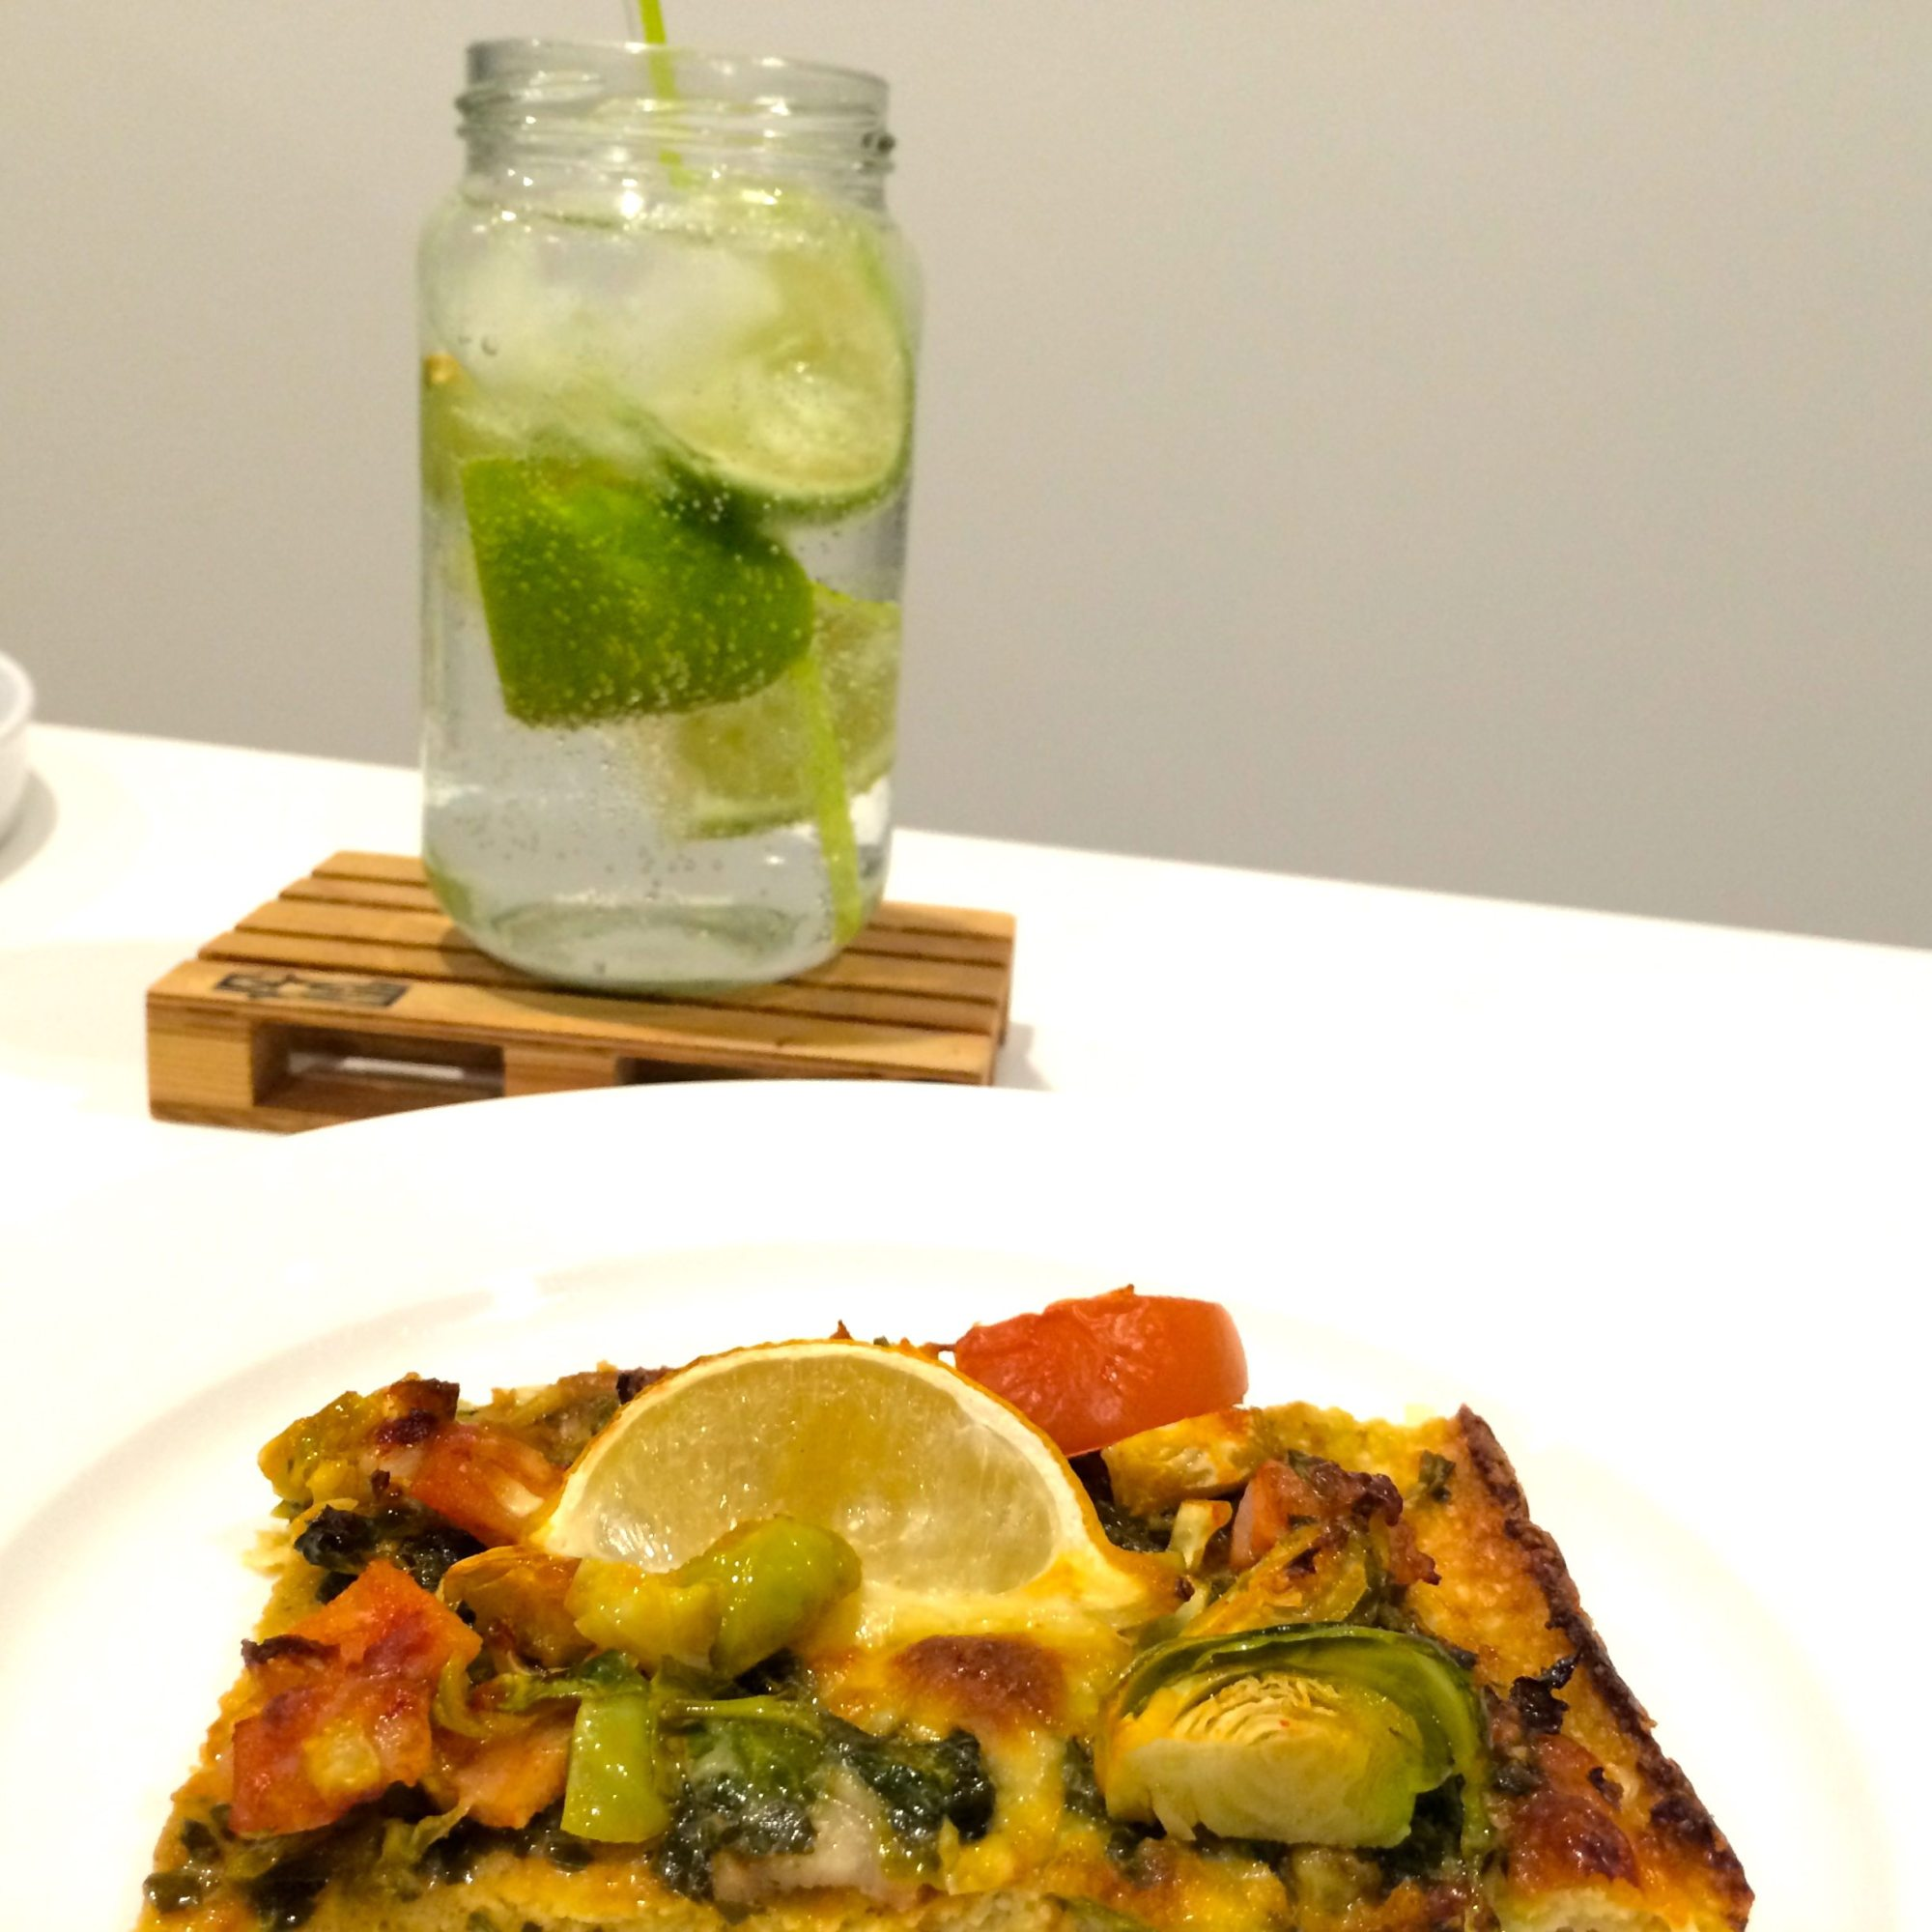 cauliflower pizza with brussel sprouts and pizza